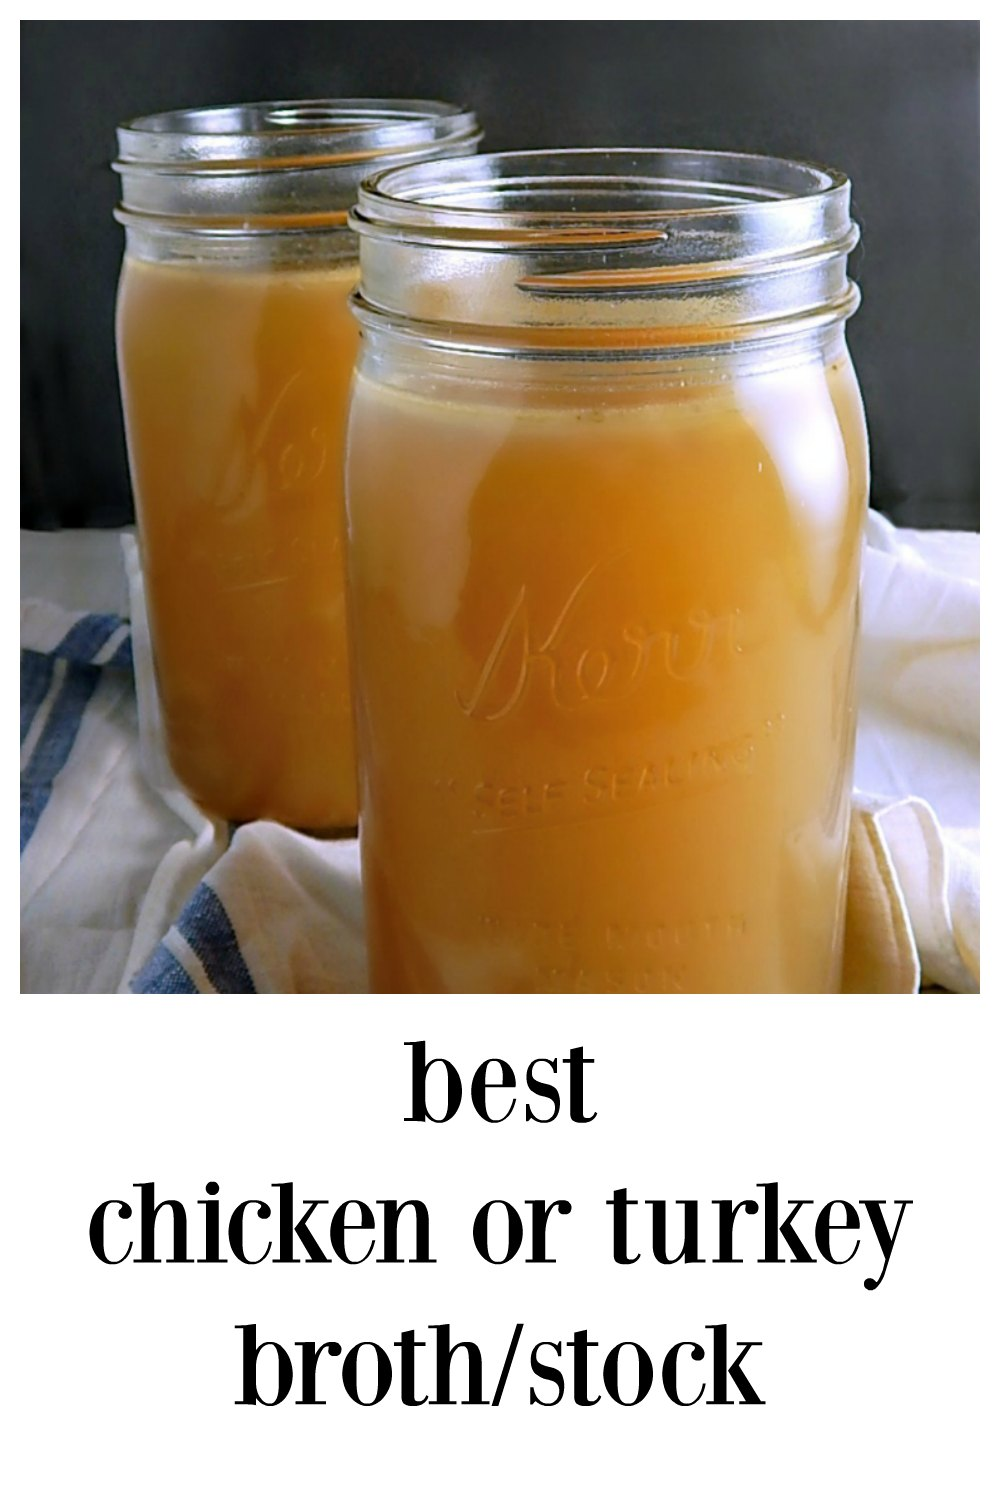 Why make your own stock? It just tastes better, no additives and it's super easy. All it takes is time. Here's the best recipe for Best Chicken or Turkey Broth adapted from Cook's Illustrated with all my hints and helps! #HomemadeChickenStock #HomemadeTurkeyBroth #CooksIllustratedBestTurkeyStock #CooksIllustratedBestChickenStock